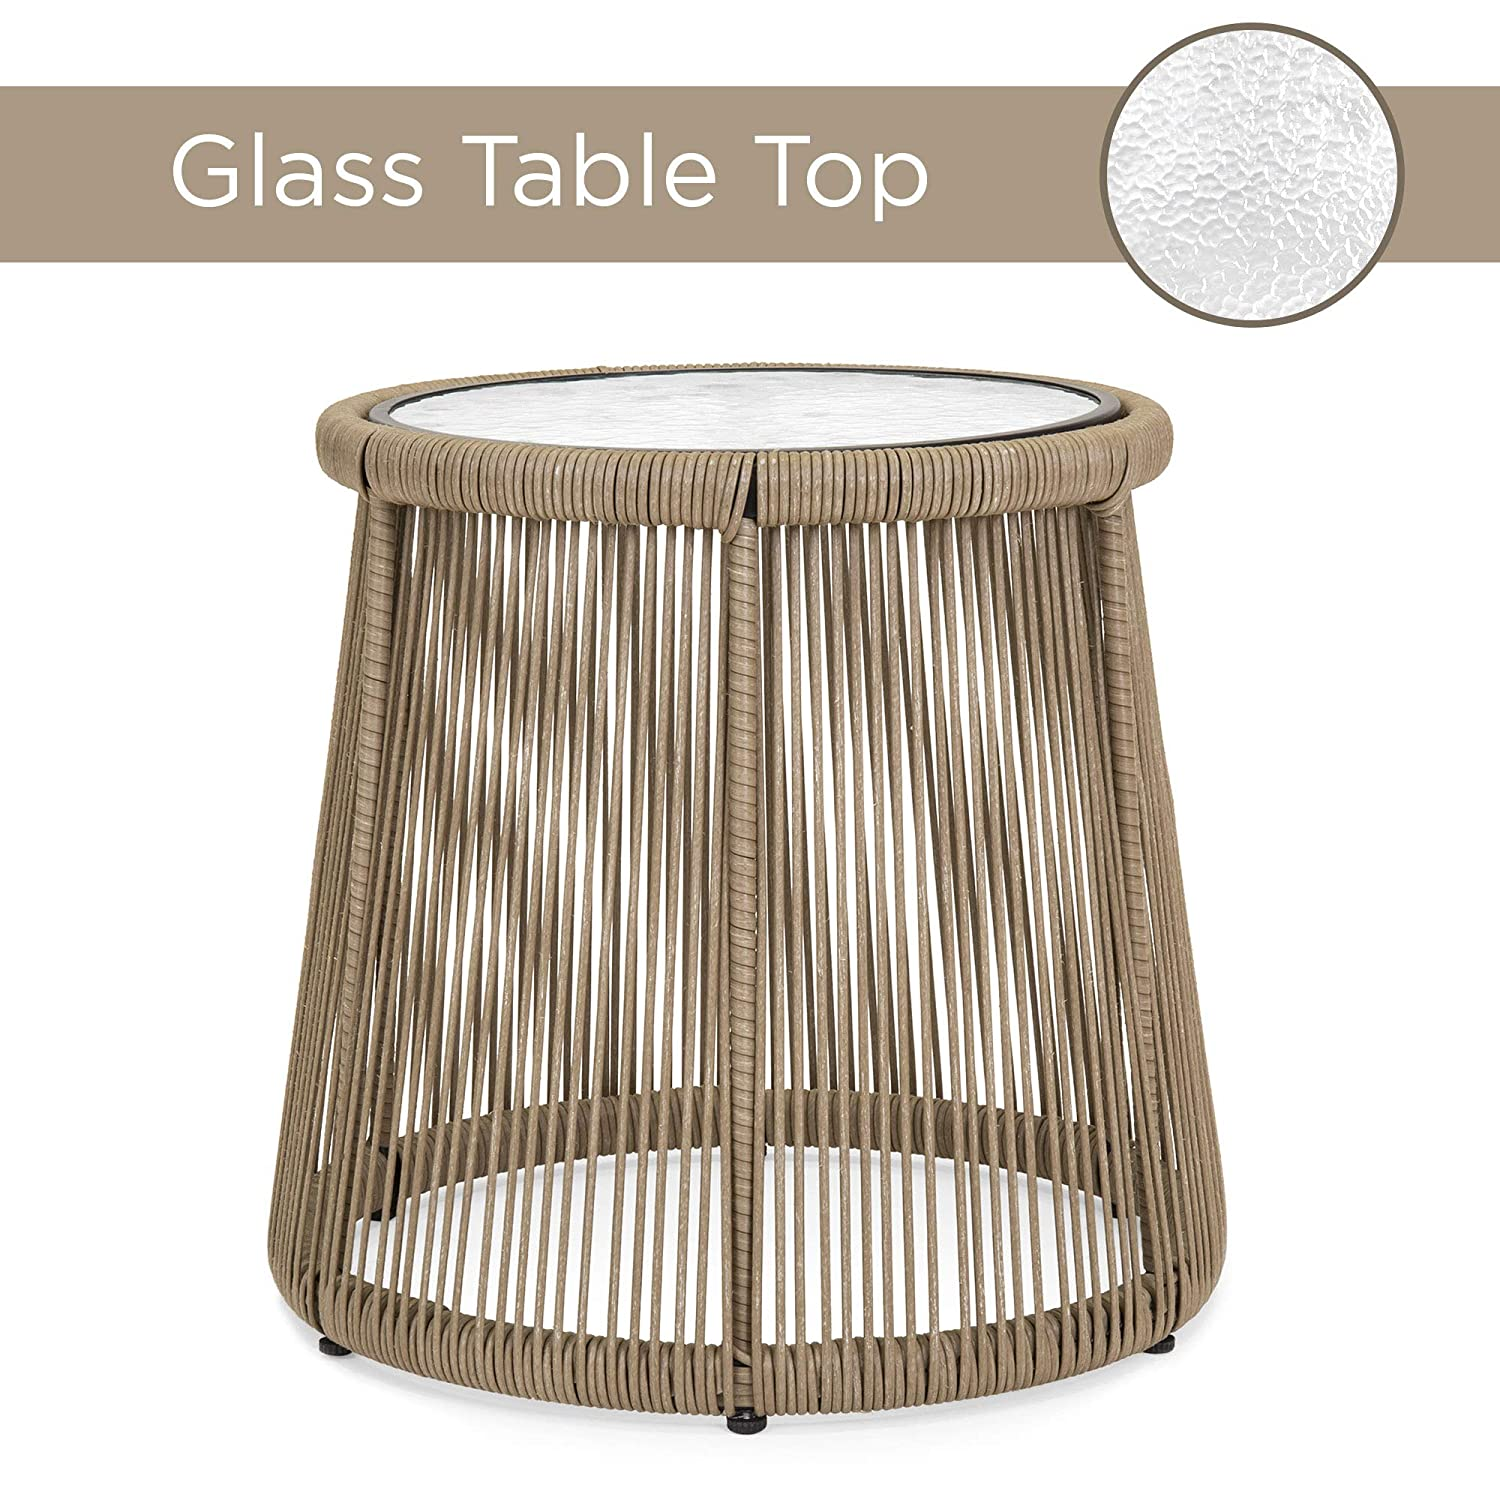 Glass Top Side Table Gray Weather-Resistant Seat /& Back Cushions Best Choice Products 3-Piece Outdoor All-Weather Wicker Conversation Bistro Furniture Set for Patio Backyard w// 2 Chairs Garden